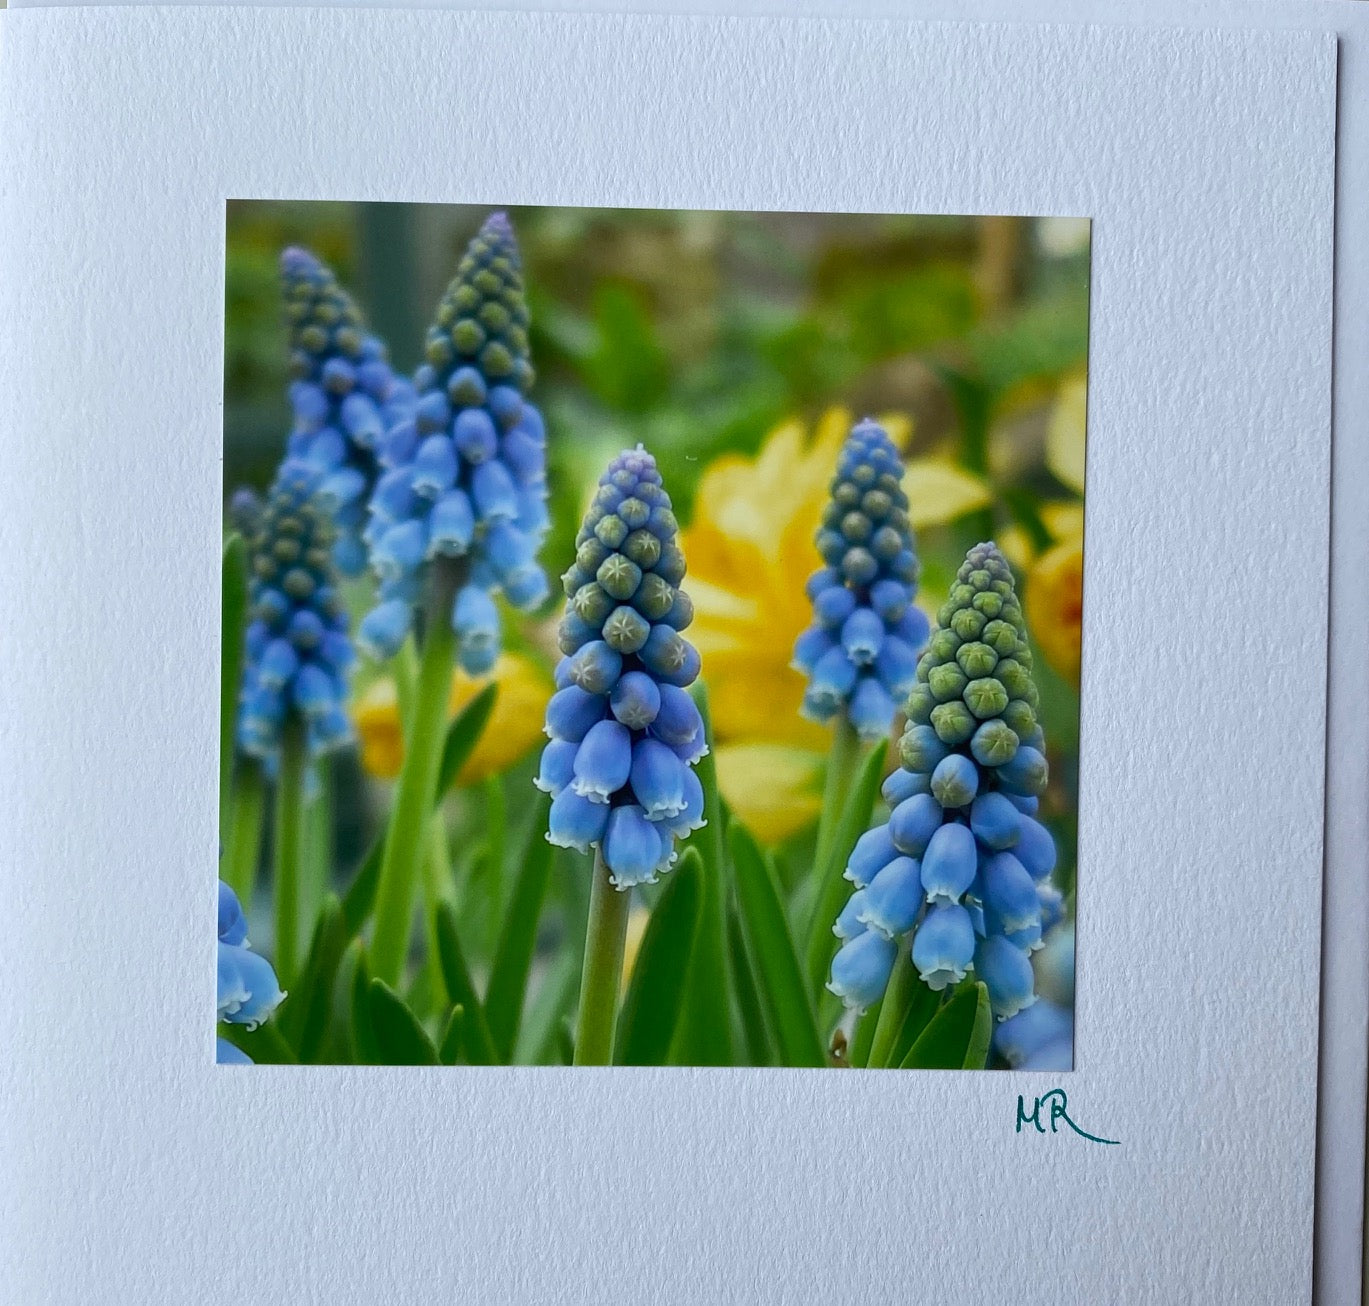 Blank Gift Card - Grape Hyacinth